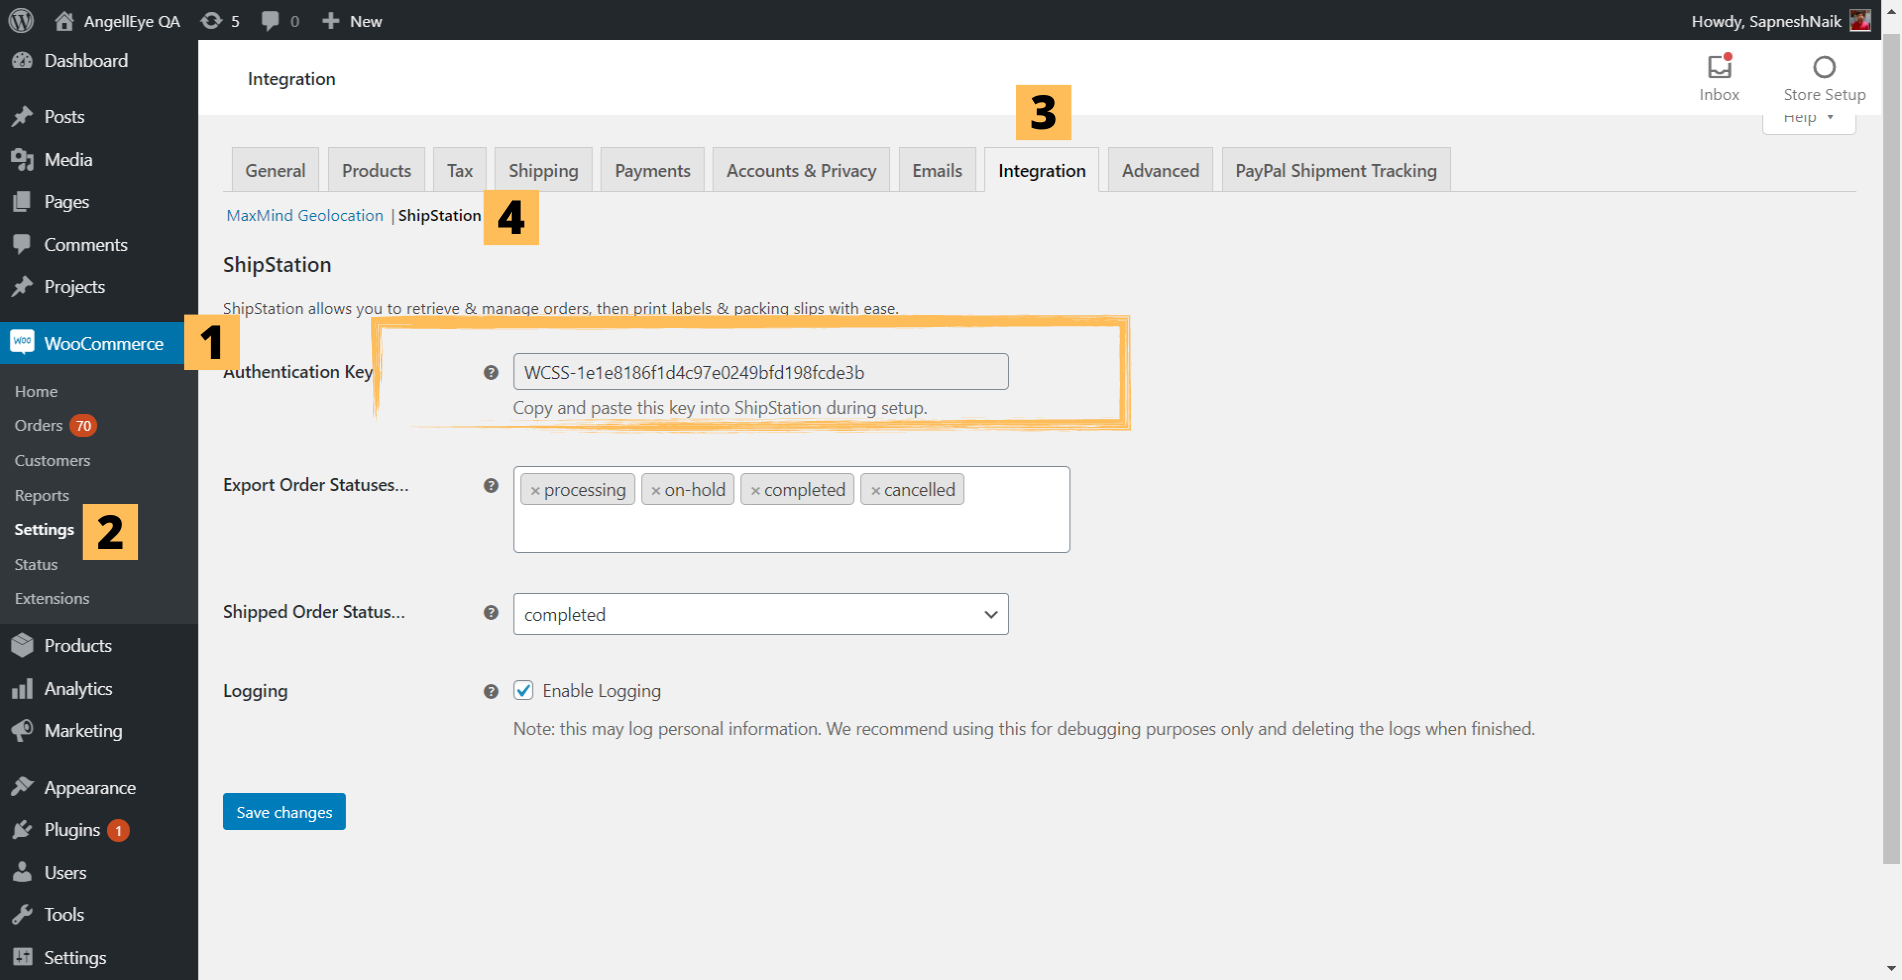 Step 1.1: Shipstation with PayPal Shipment Tracking for WooCommerce Plugin